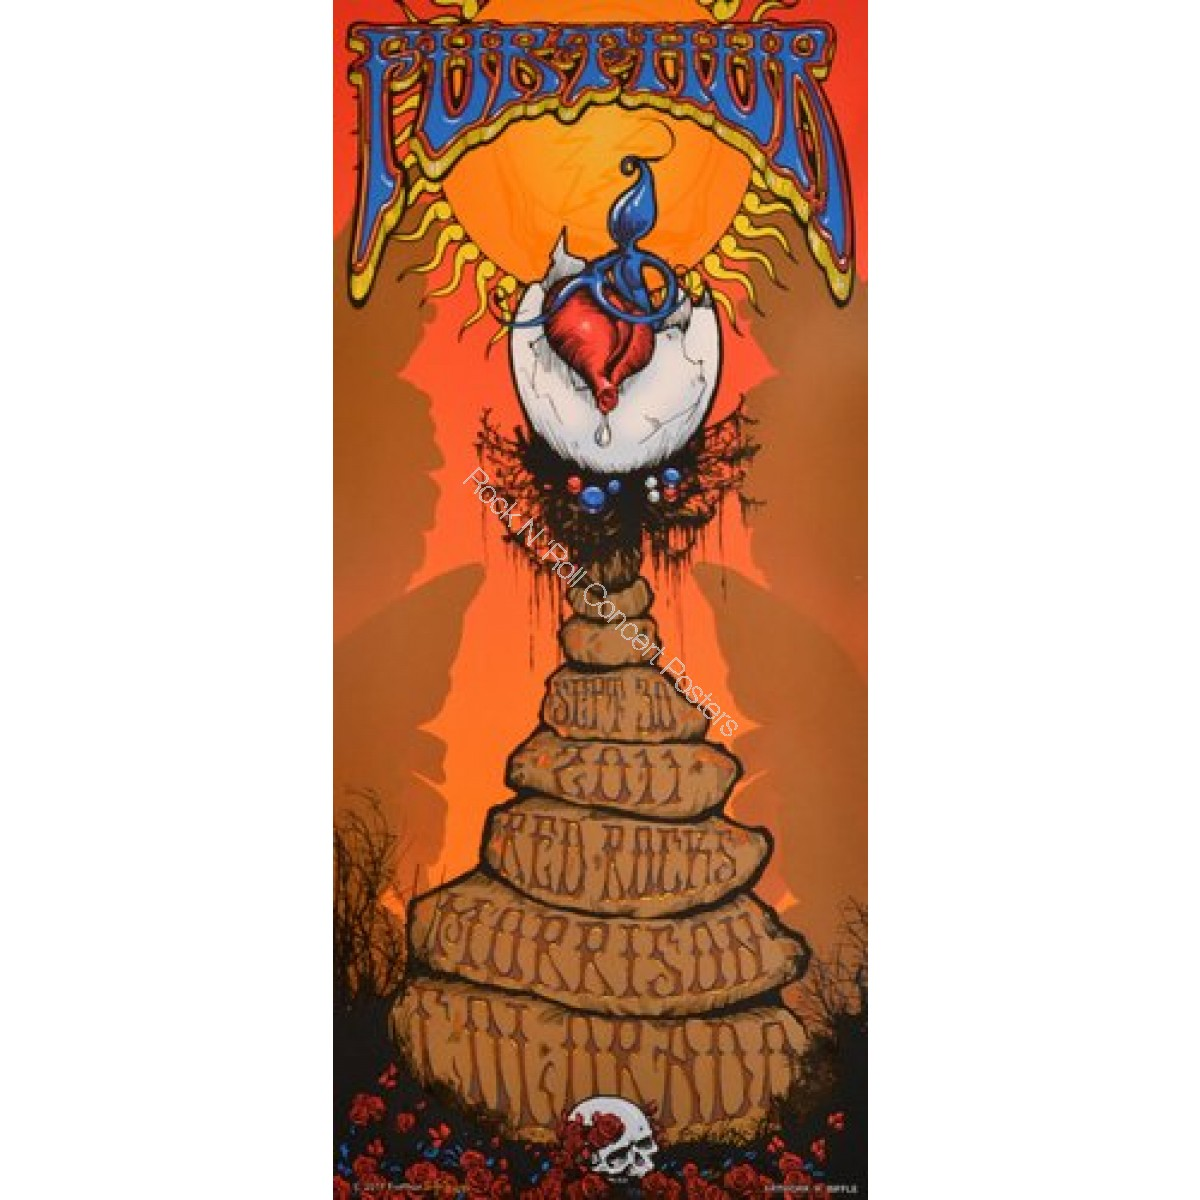 Furthur Red Rocks 9/30/11 Official print